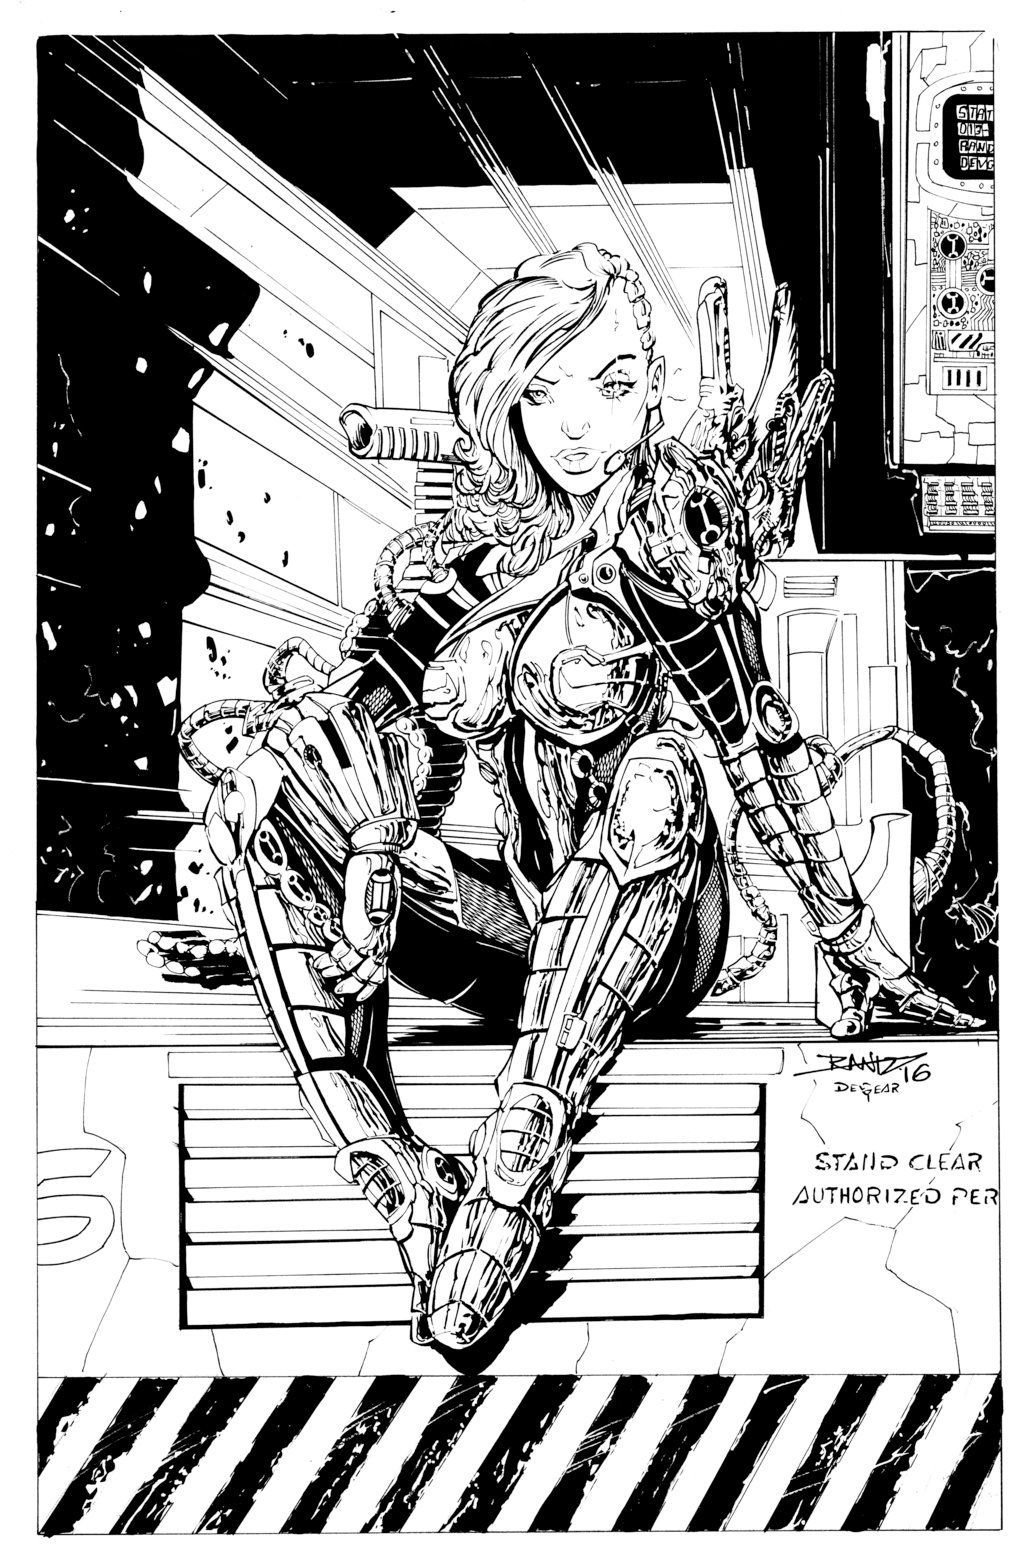 Sci Fi Girl Inks By Devgear On Deviantart With Images -3186